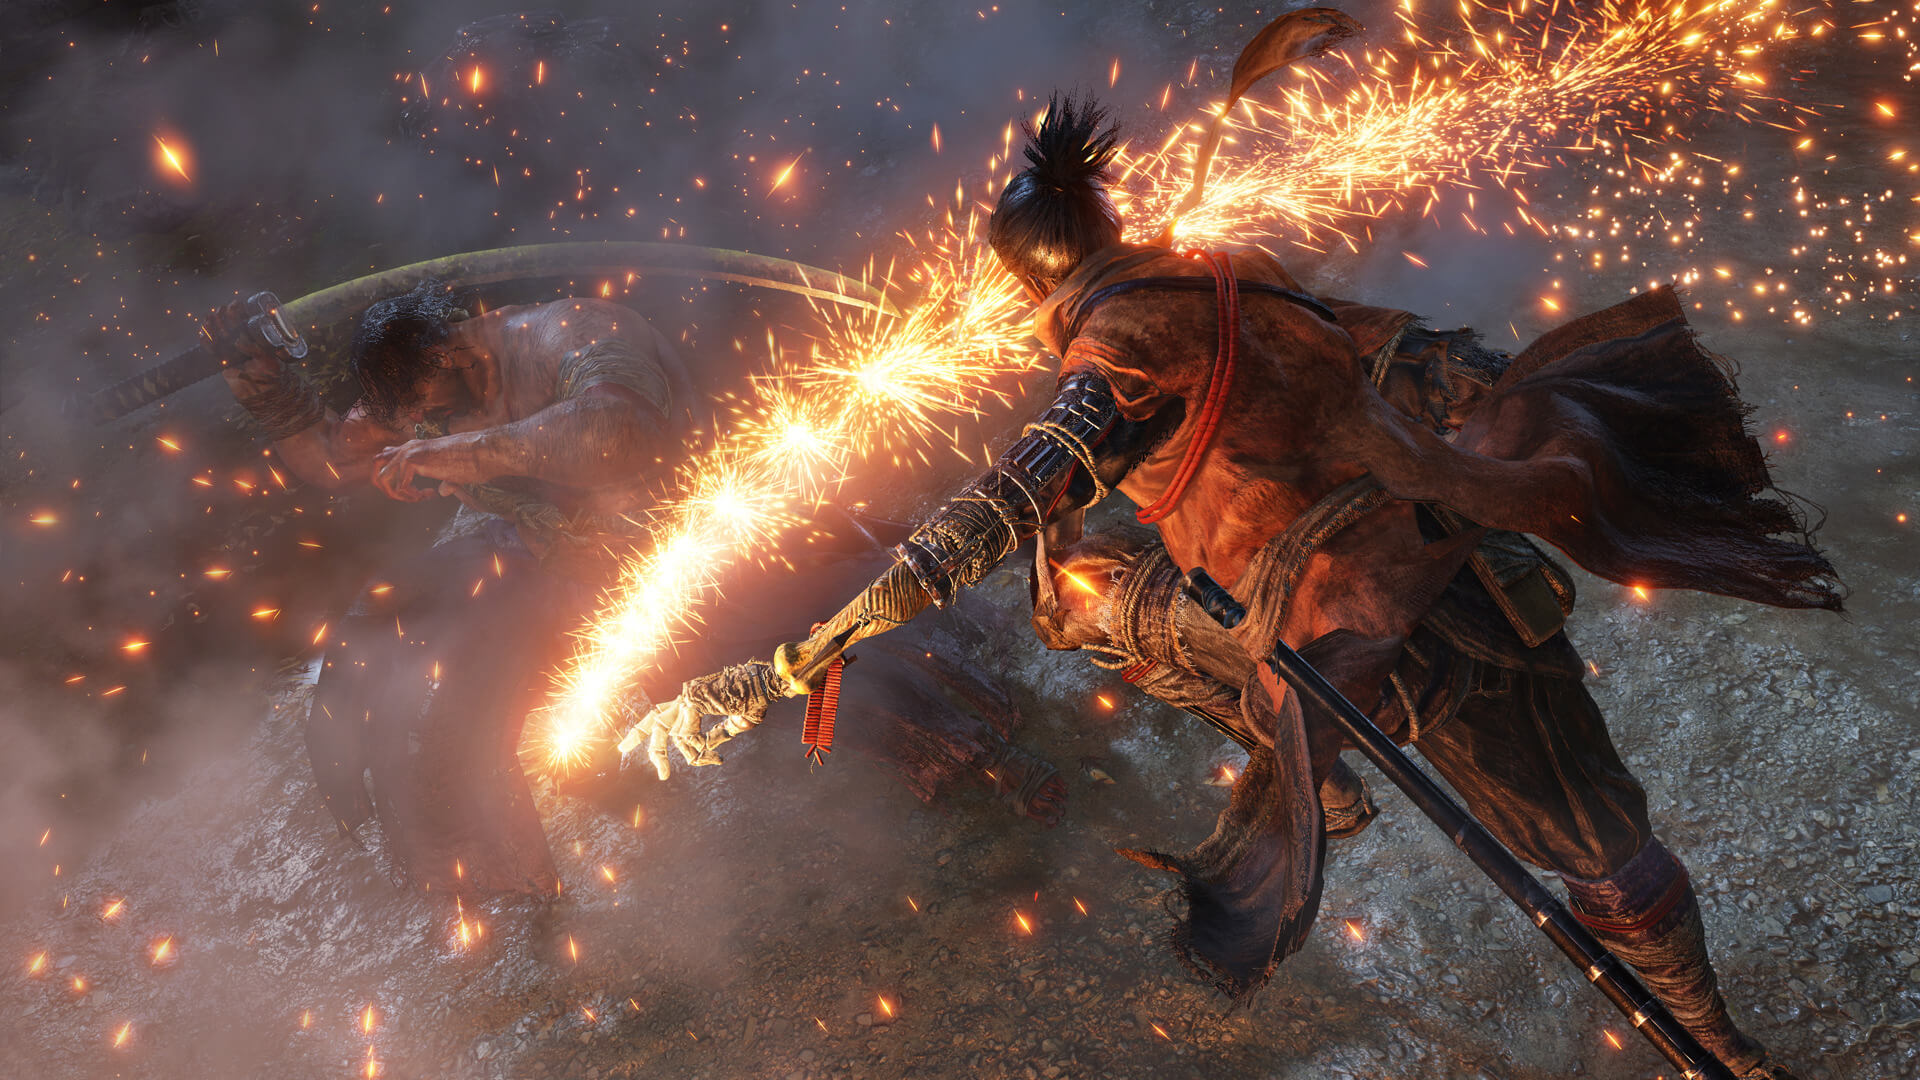 Sekiro Online Mod adds PvP and co-op modes, and is now available for download